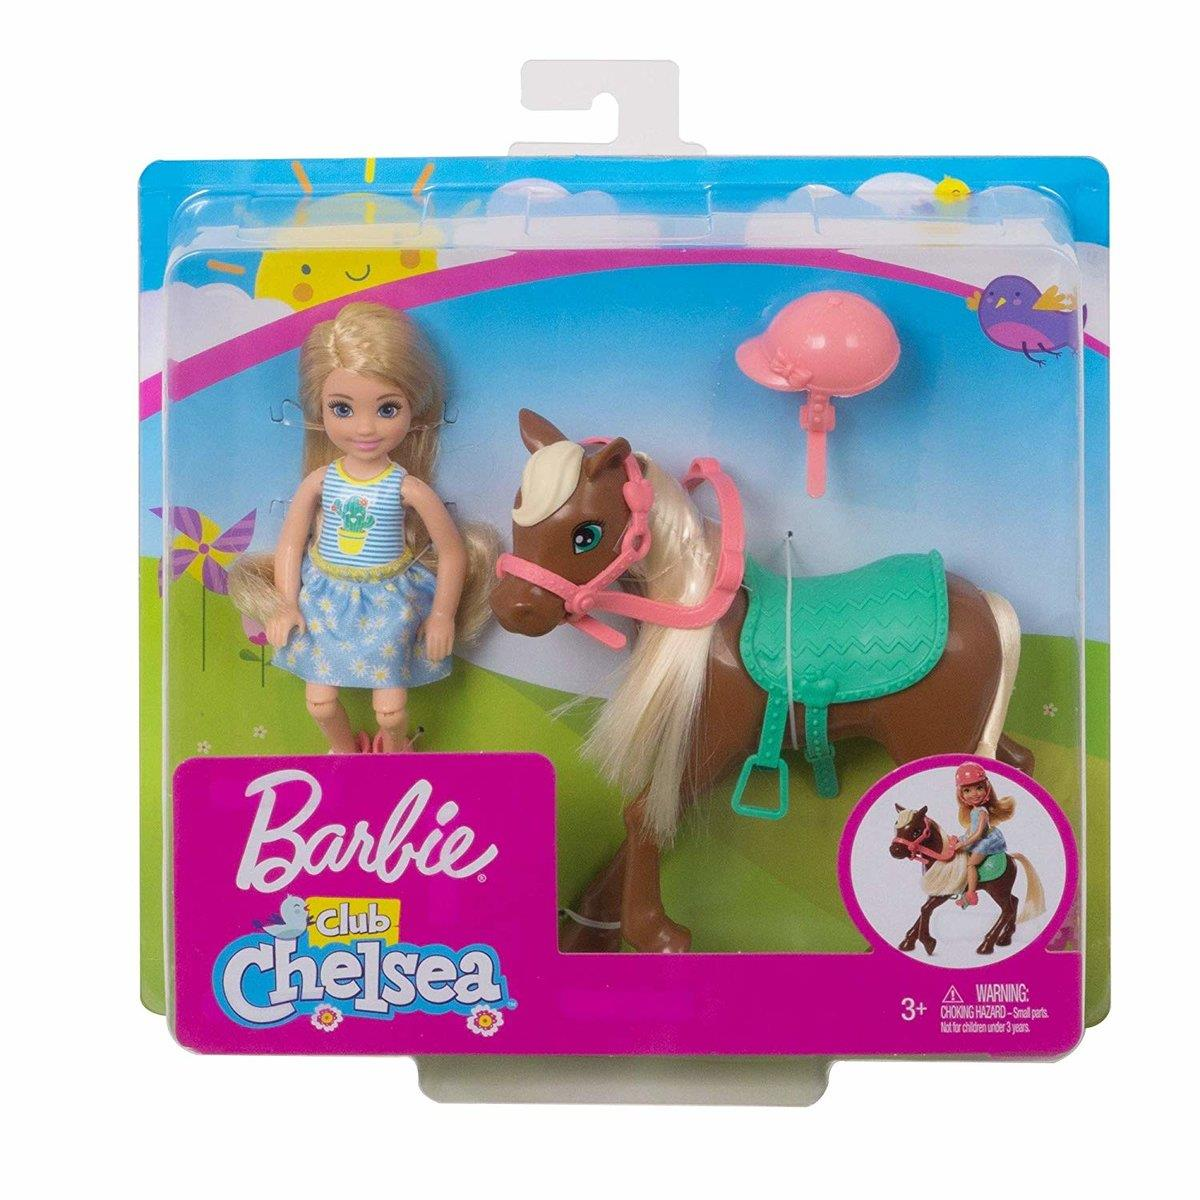 Barbie Chelsea Puppe & Pony, blond